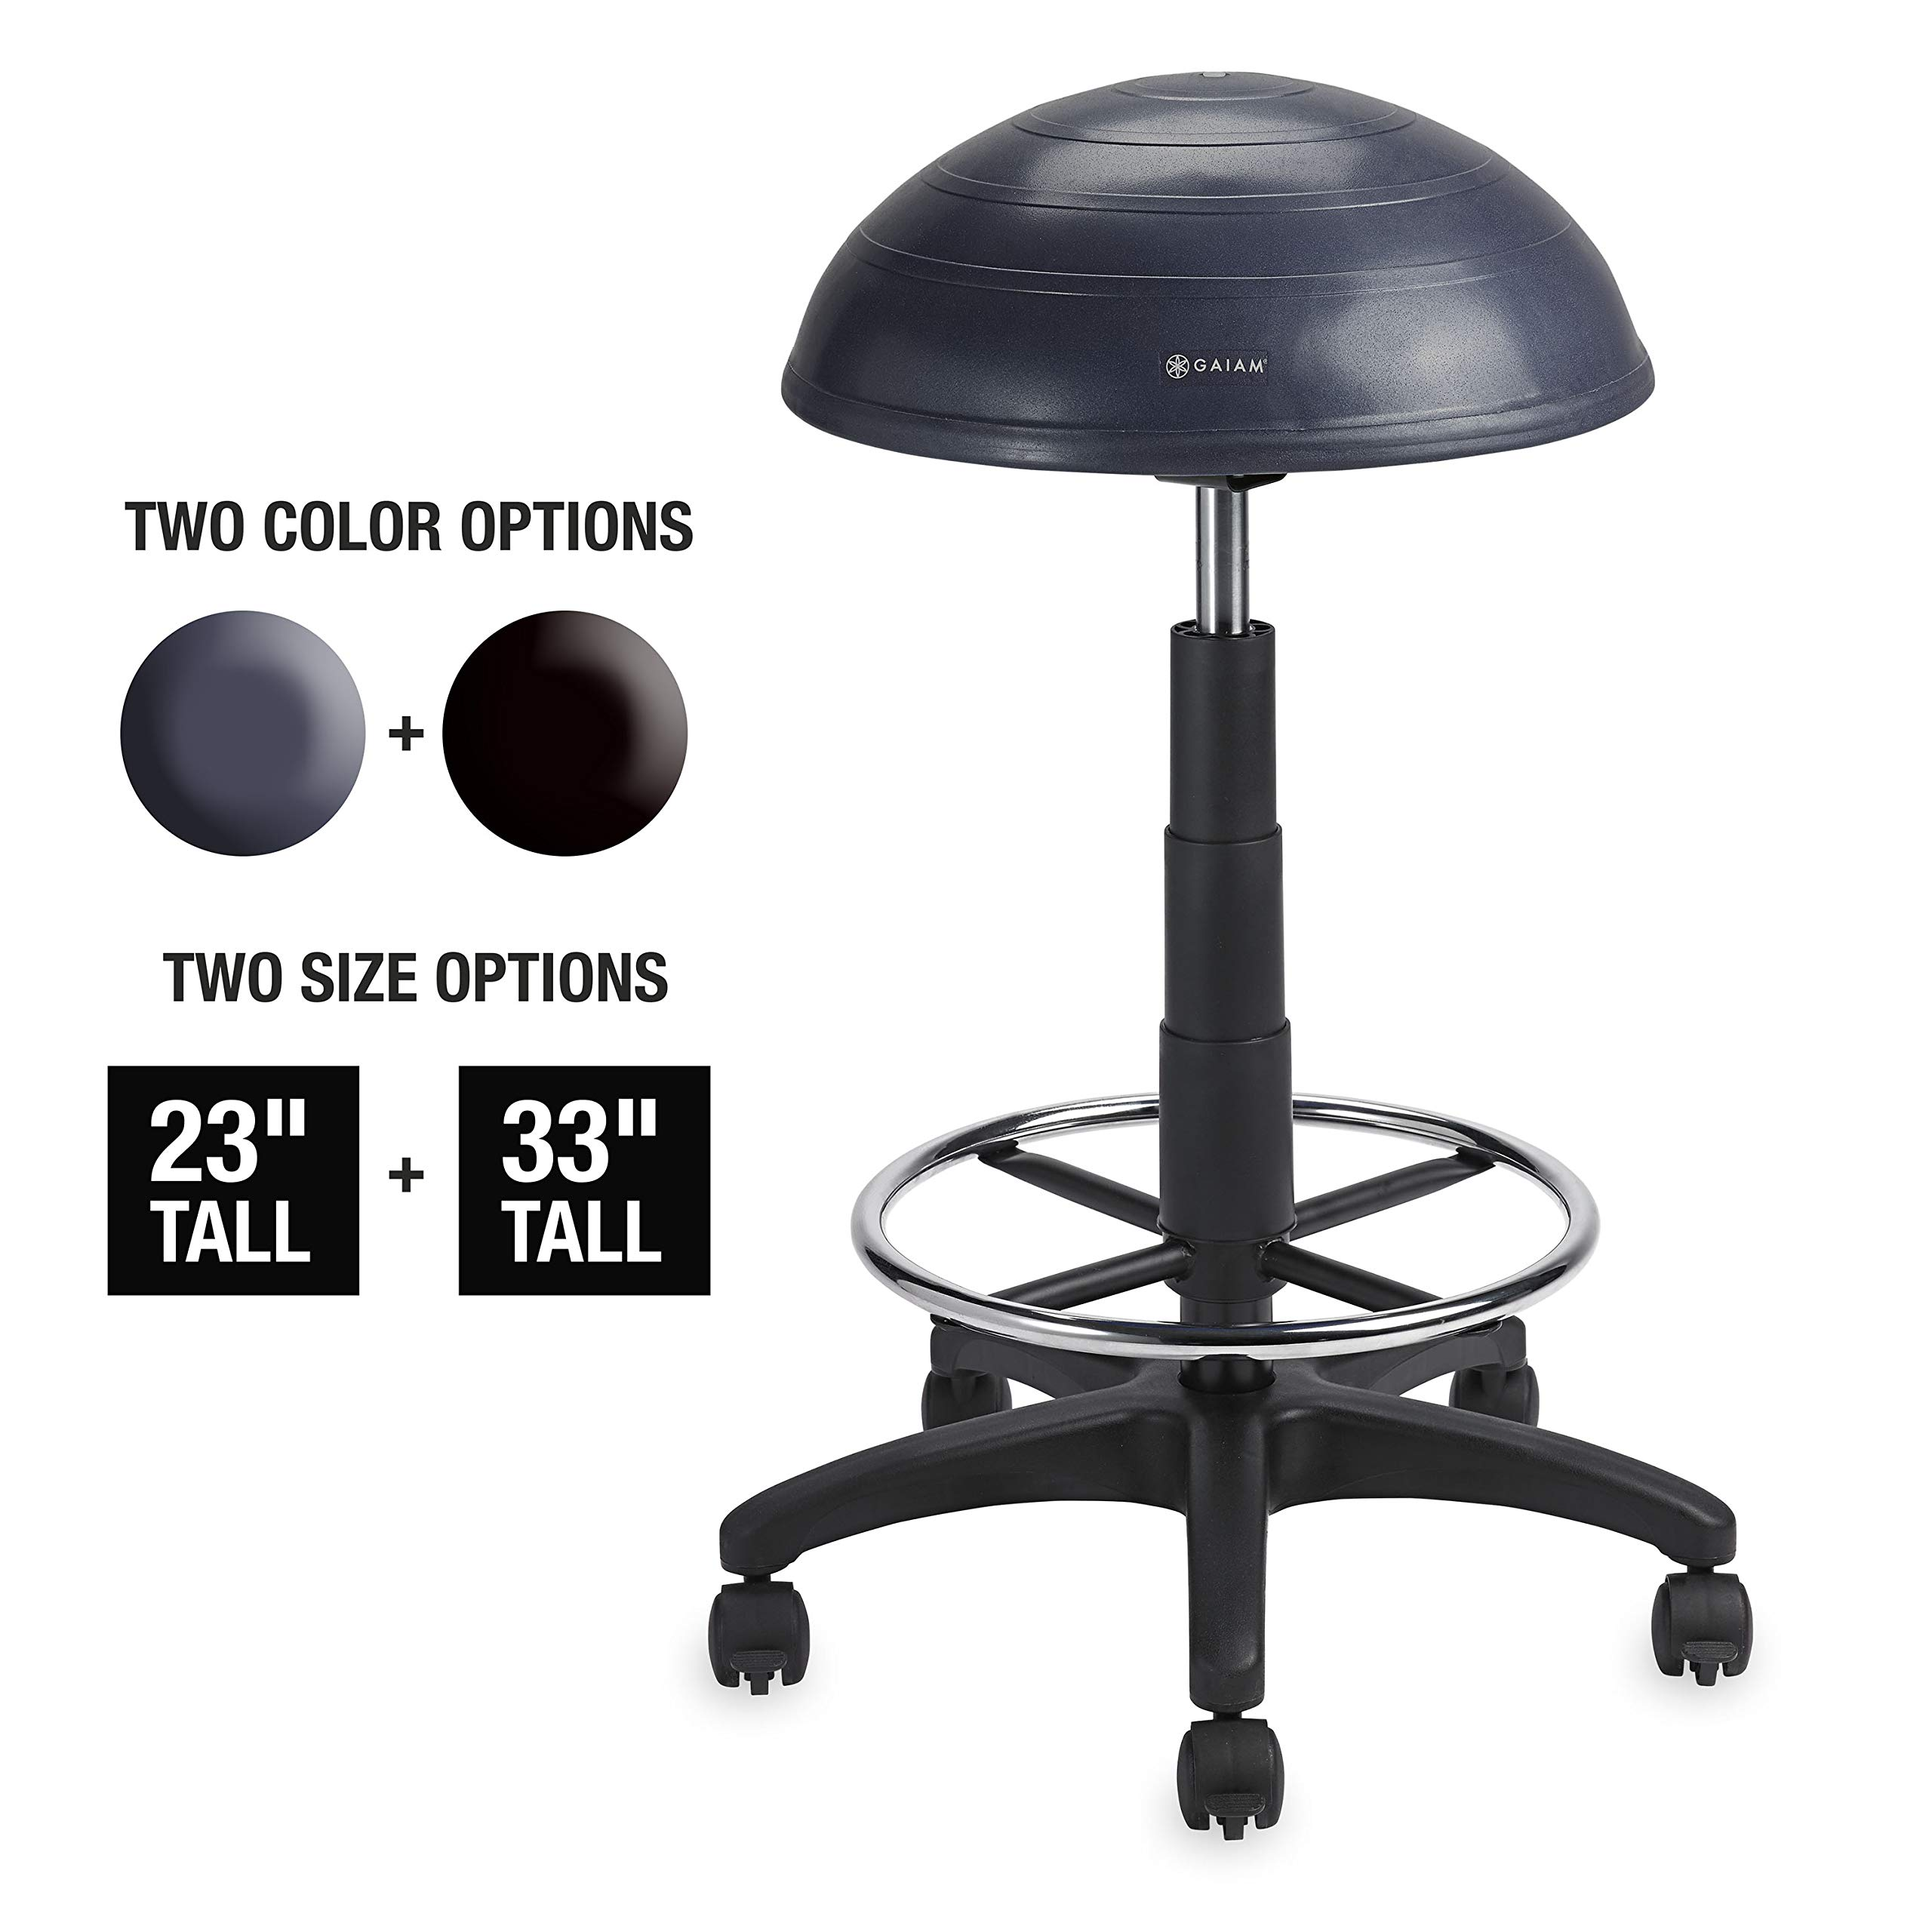 Gaiam Balance Ball Chair Stool, Half-Dome Stability Ball Adjustable Tall Office Sit Stand Swivel Desk Chair Drafting Stool with Round Foot Rest for Standing Desks Home or Office - Granite 33 by Gaiam Active Sitting